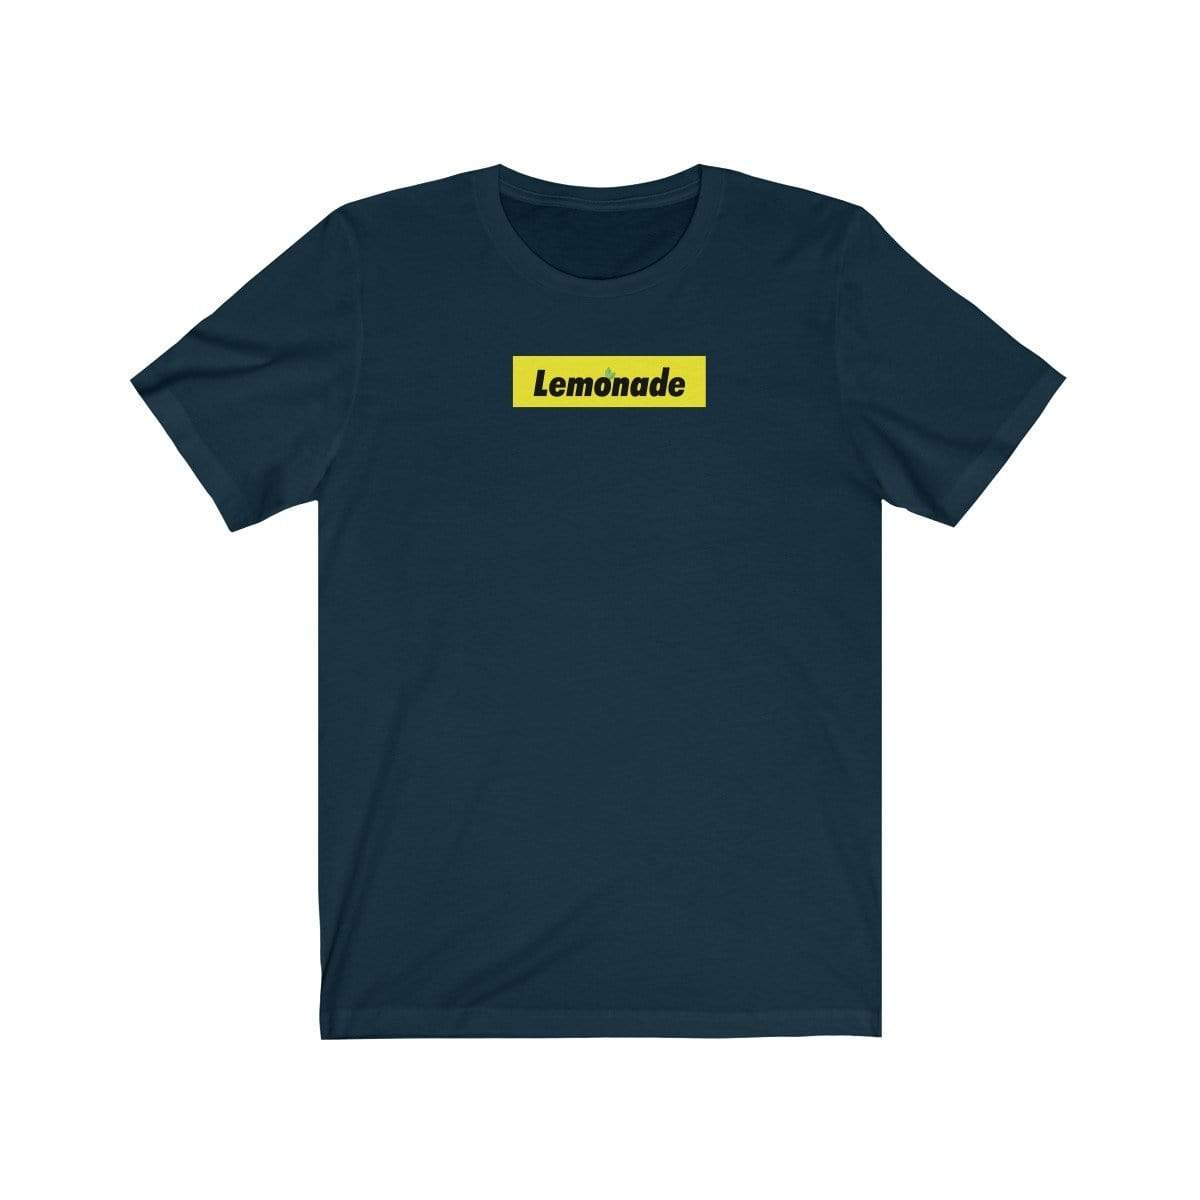 Lemonade Yellow Box Tee - Ice Cold Lmnd Lemonade Yellow Box Tee